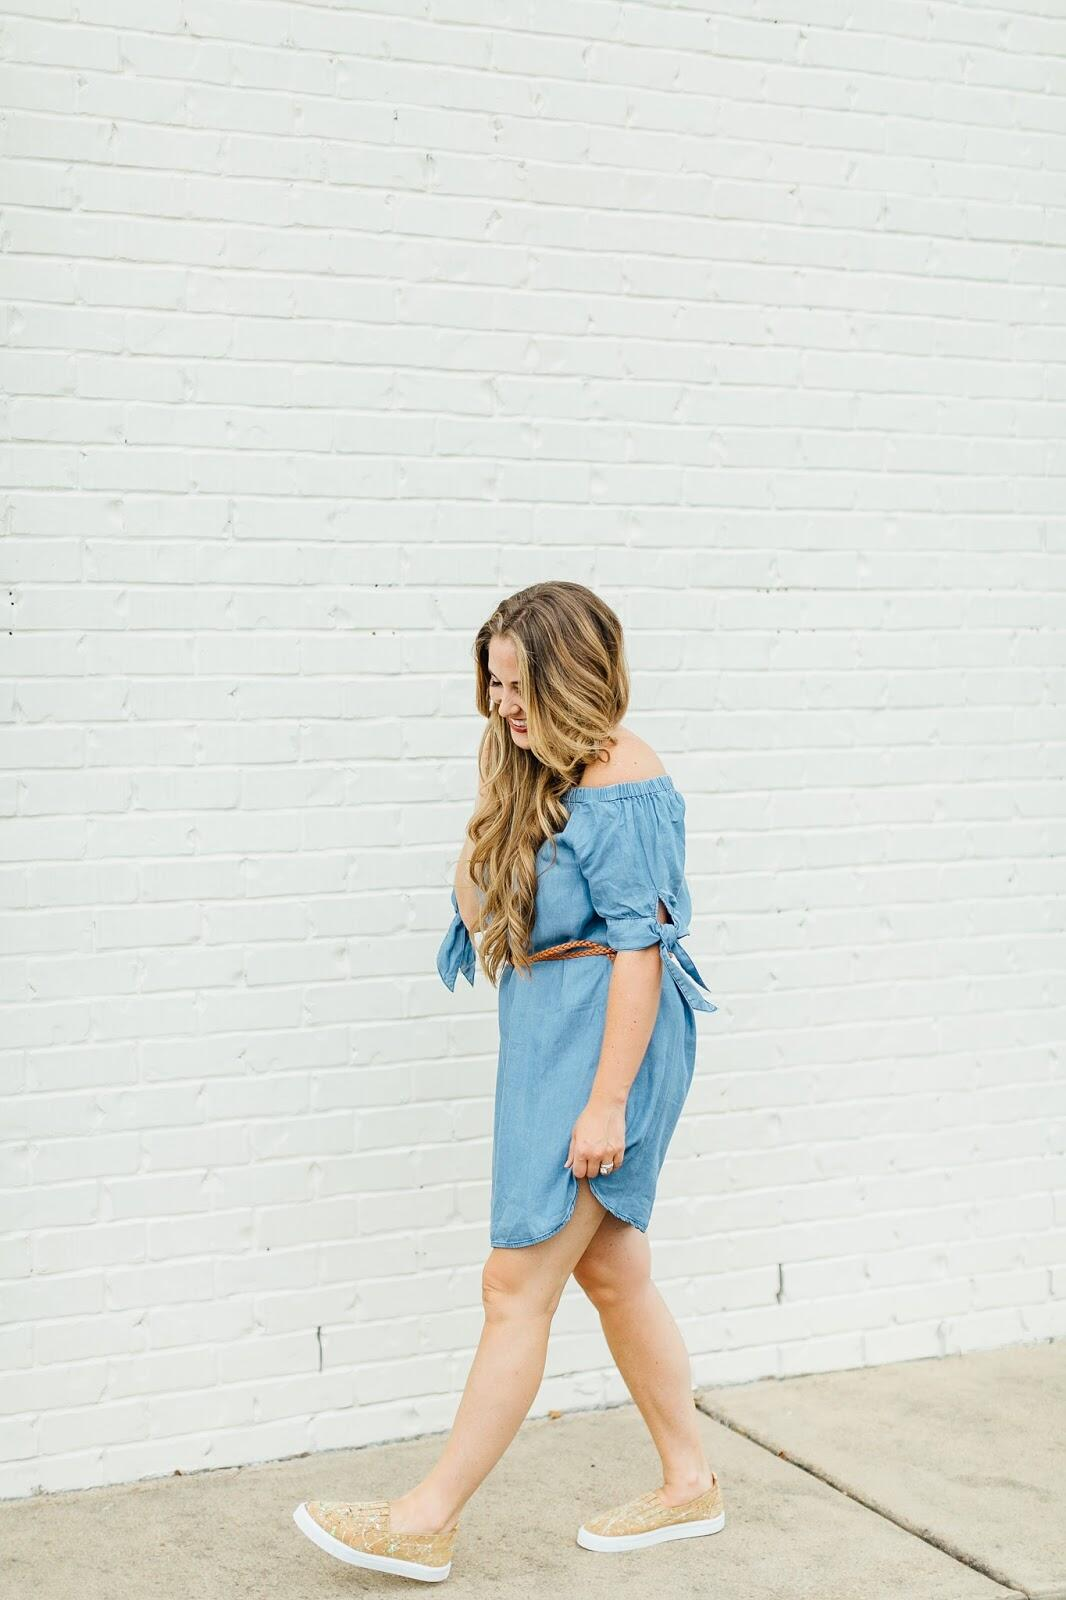 Mamas & Minis Collective - Back to School Shoes by Memphis mom blogger Walking in Memphis in High Heels